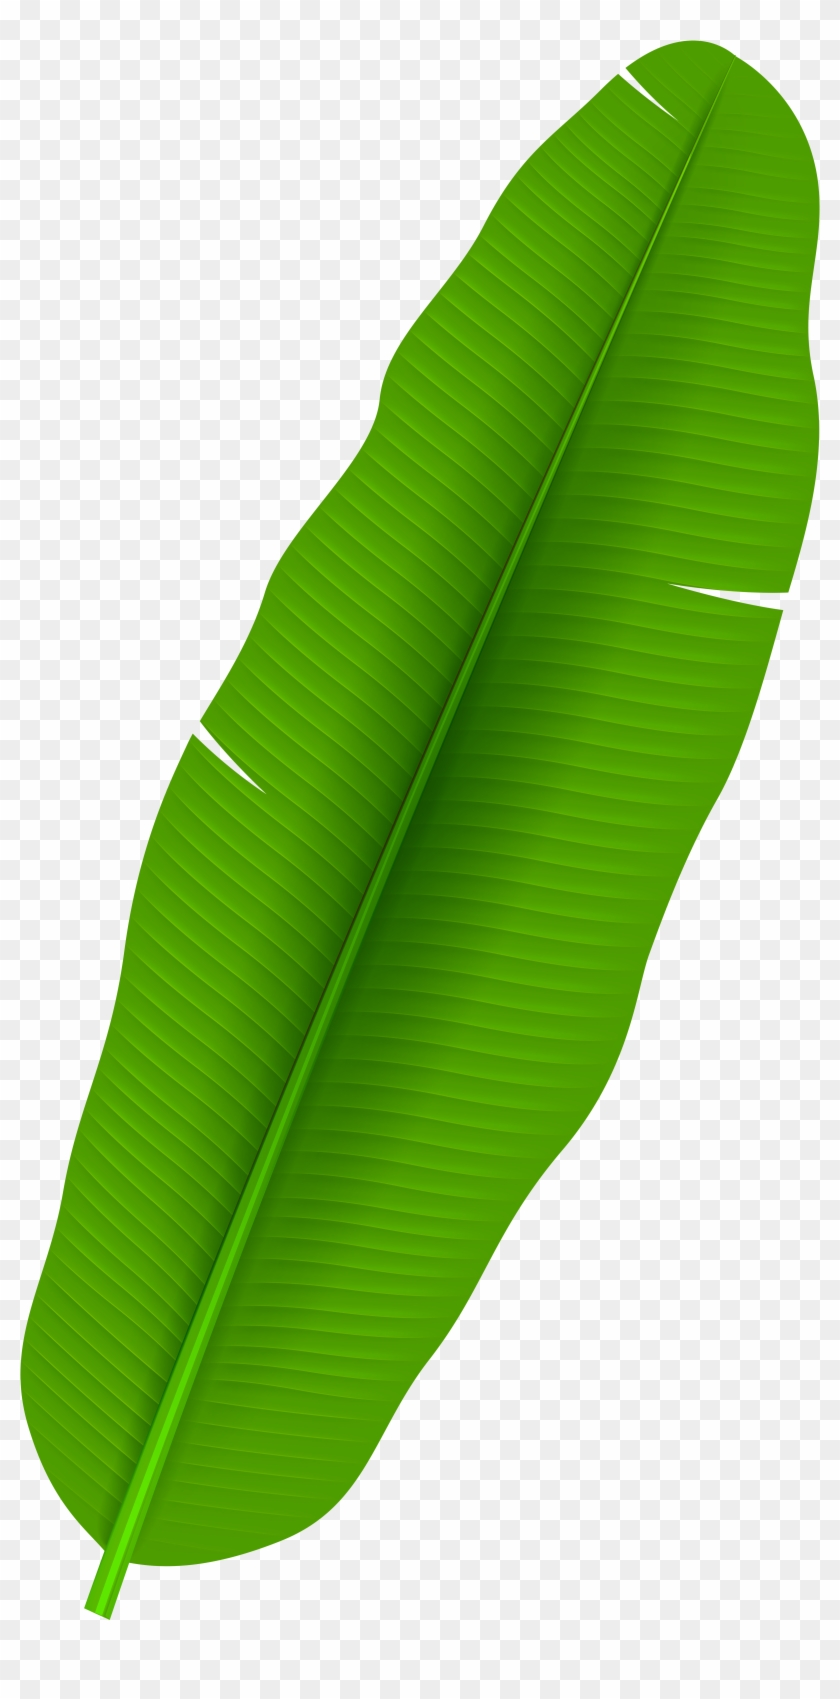 Exotic Palm Leaf Transparent Png Clip Art - Banana Leaf Clipart Png #20174